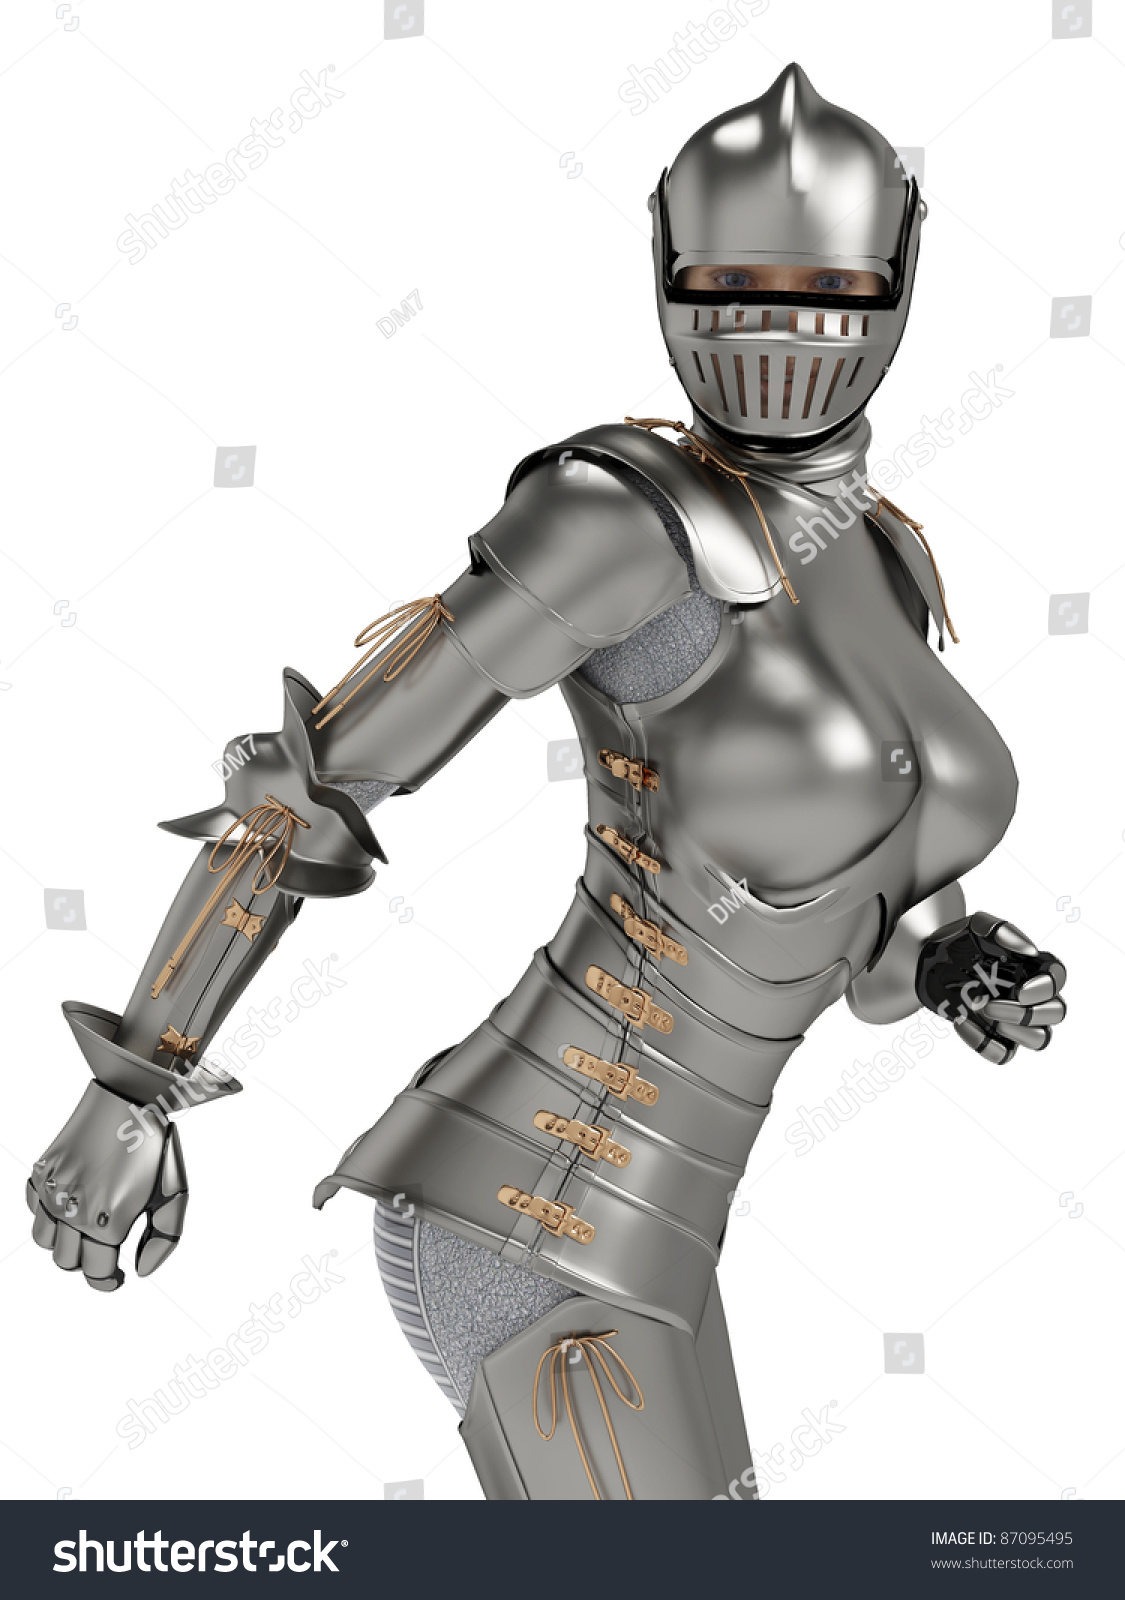 Knight Of Wands As Advice: Knight Metal Lady Ops Stock Photo 87095495 : Shutterstock